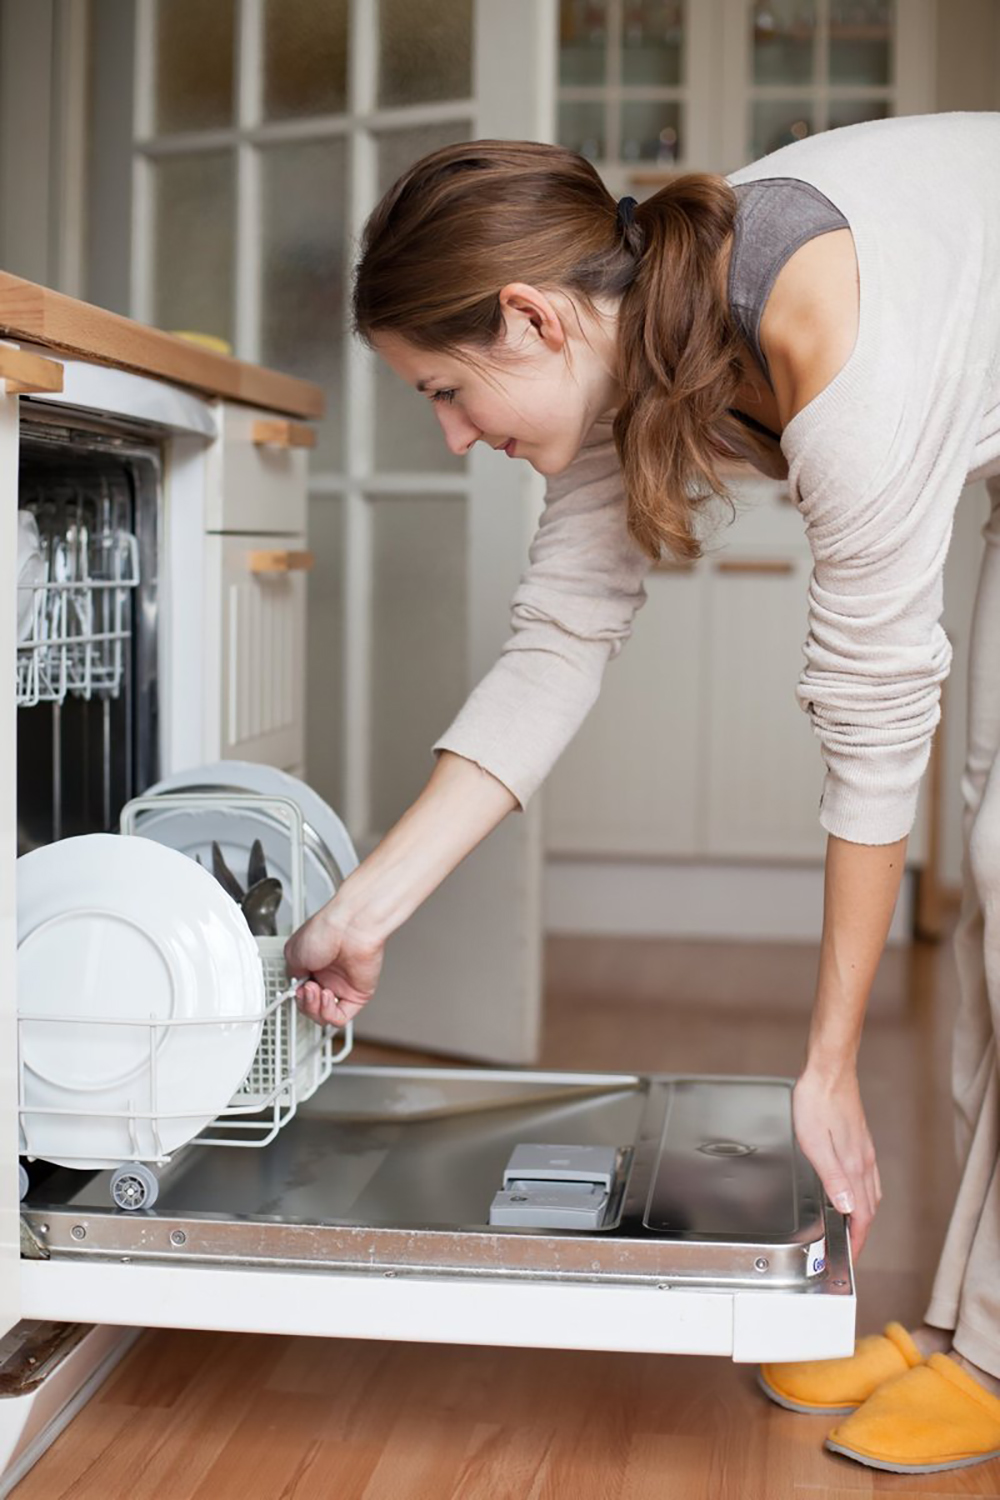 Check Dishes, Flatware, and Basic Pots and Pans to Make Sure They're Clean